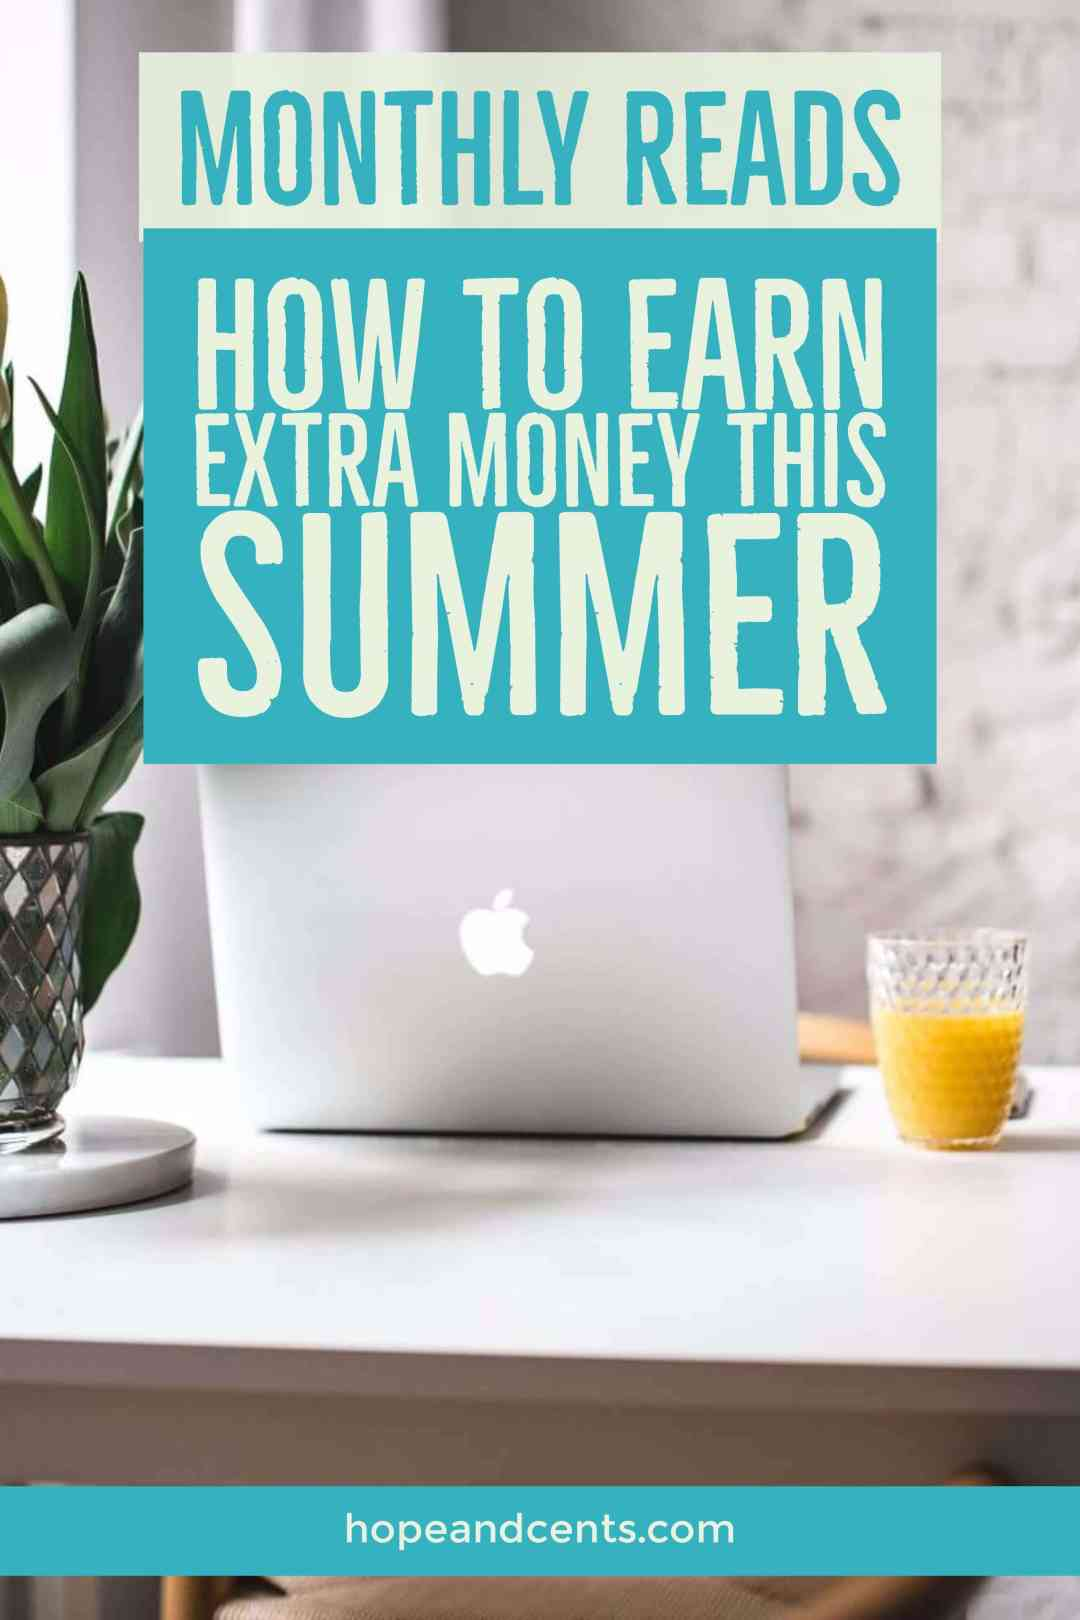 Looking to make some extra money this summer? Make the most of the warm weather months with these ideas to help you pad your bank account, pay off debt, or meet a savings goal. Some can even turn into a long-term side hustle...if that's what you're looking for!